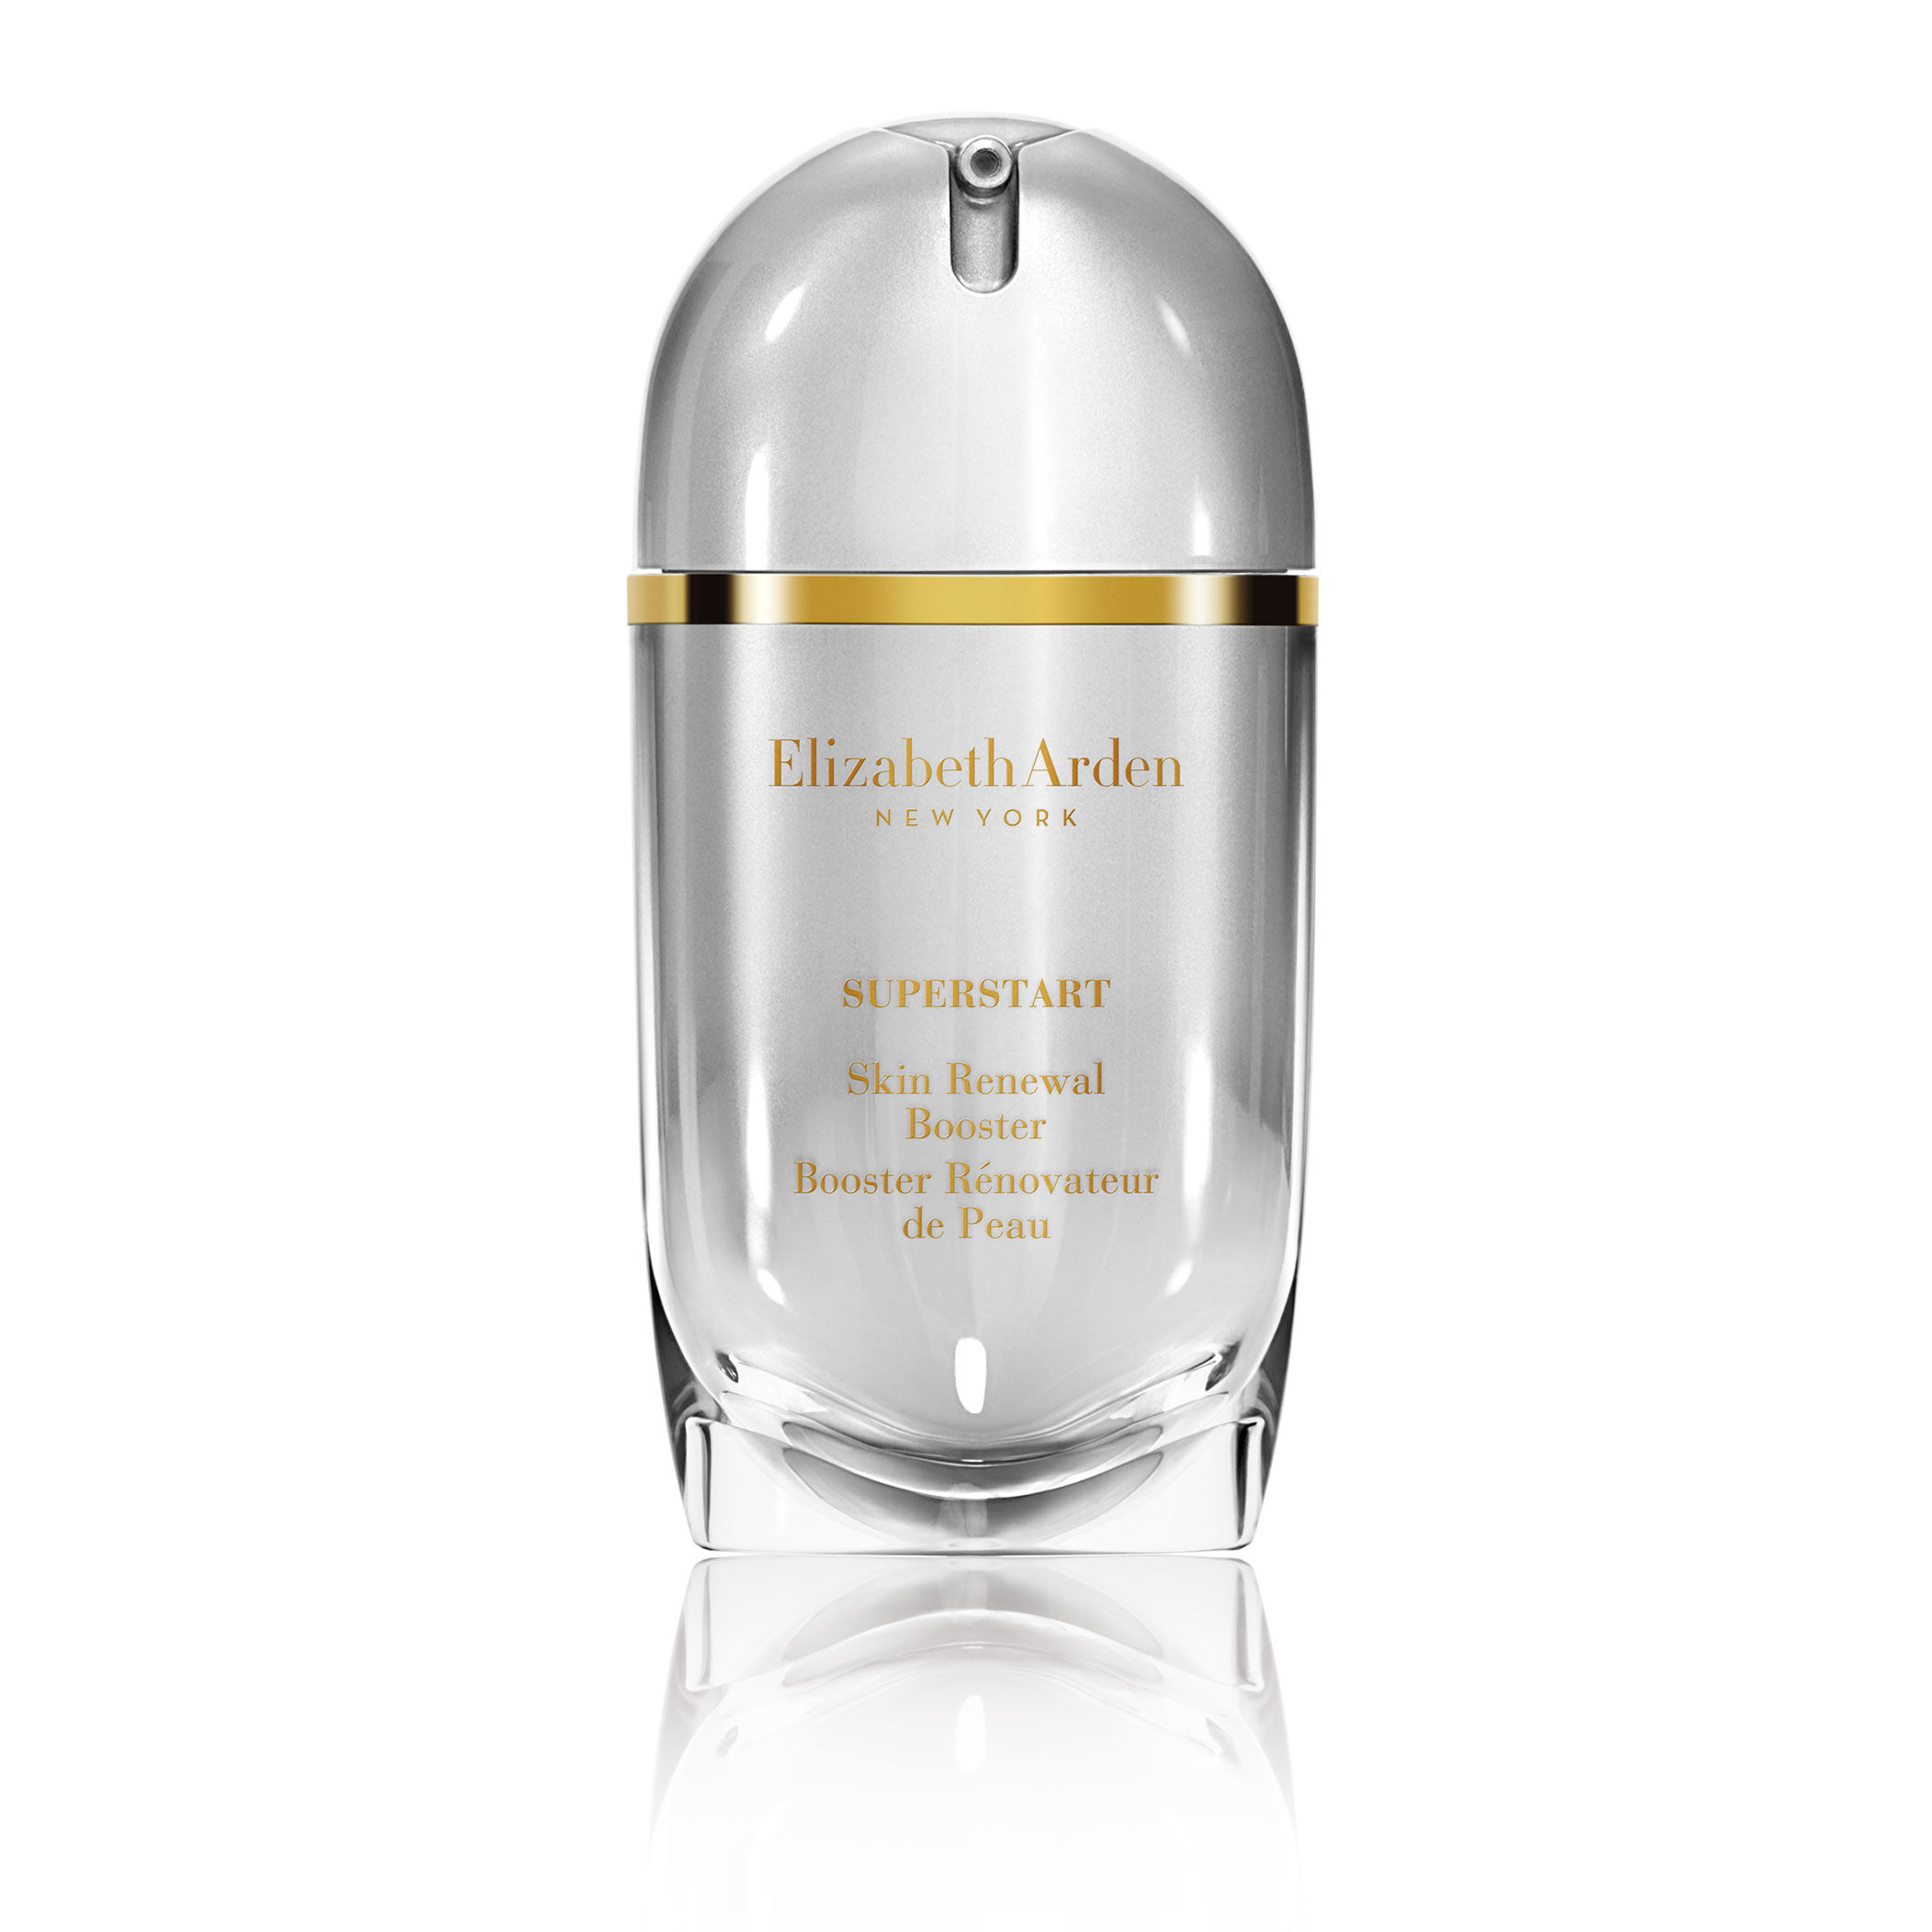 Elizabeth Arden Superstart Skin Renewal Booster, 1 oz.